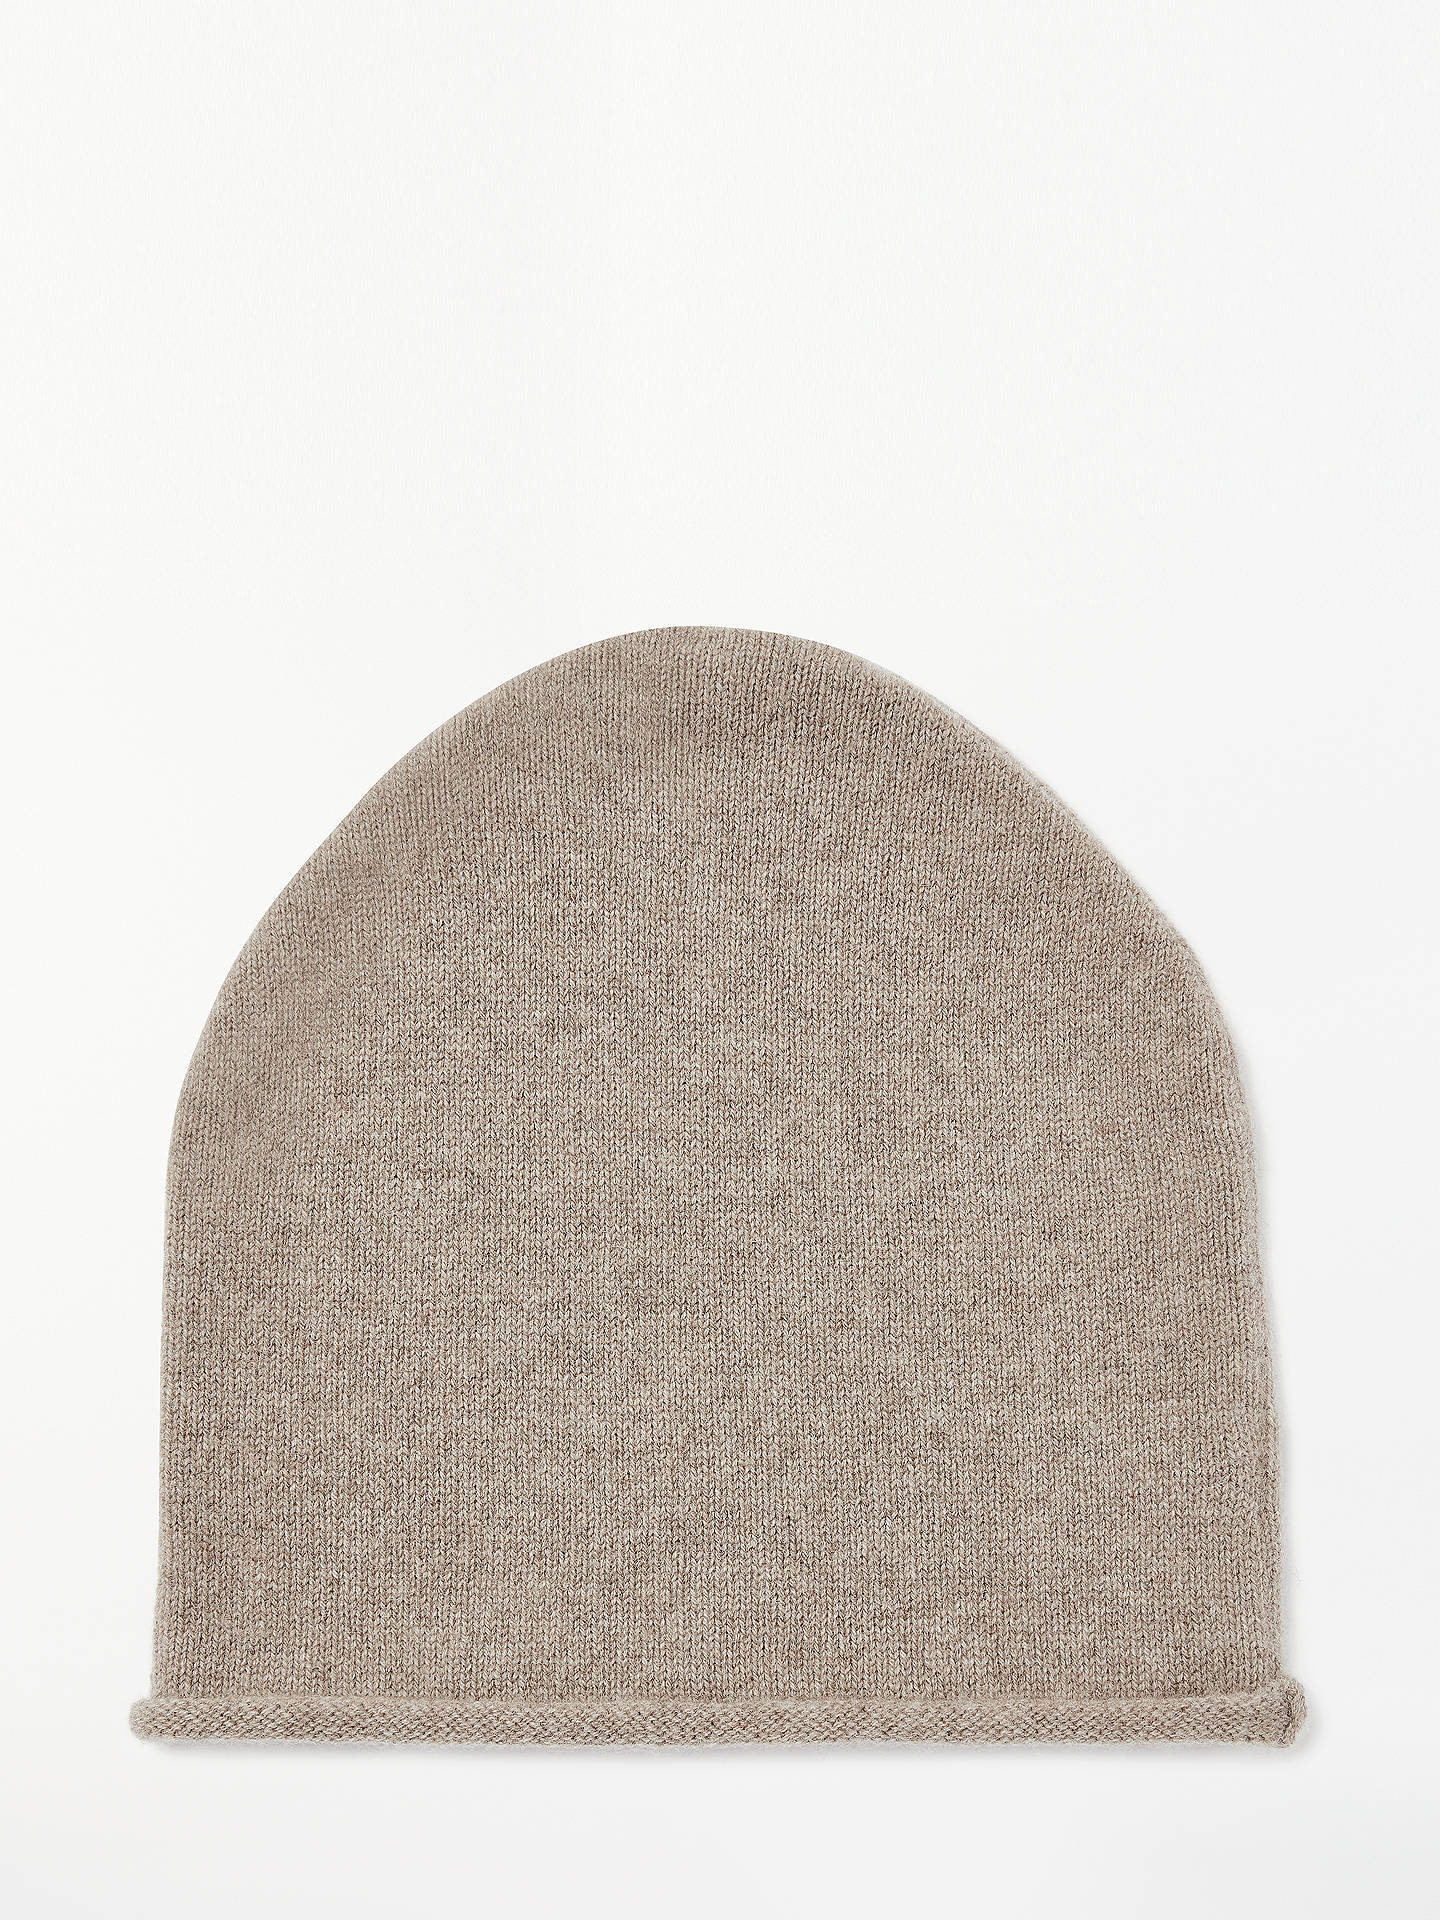 BuyJohn Lewis & Partners Cashmere Roll Beanie, Toast Online at johnlewis.com